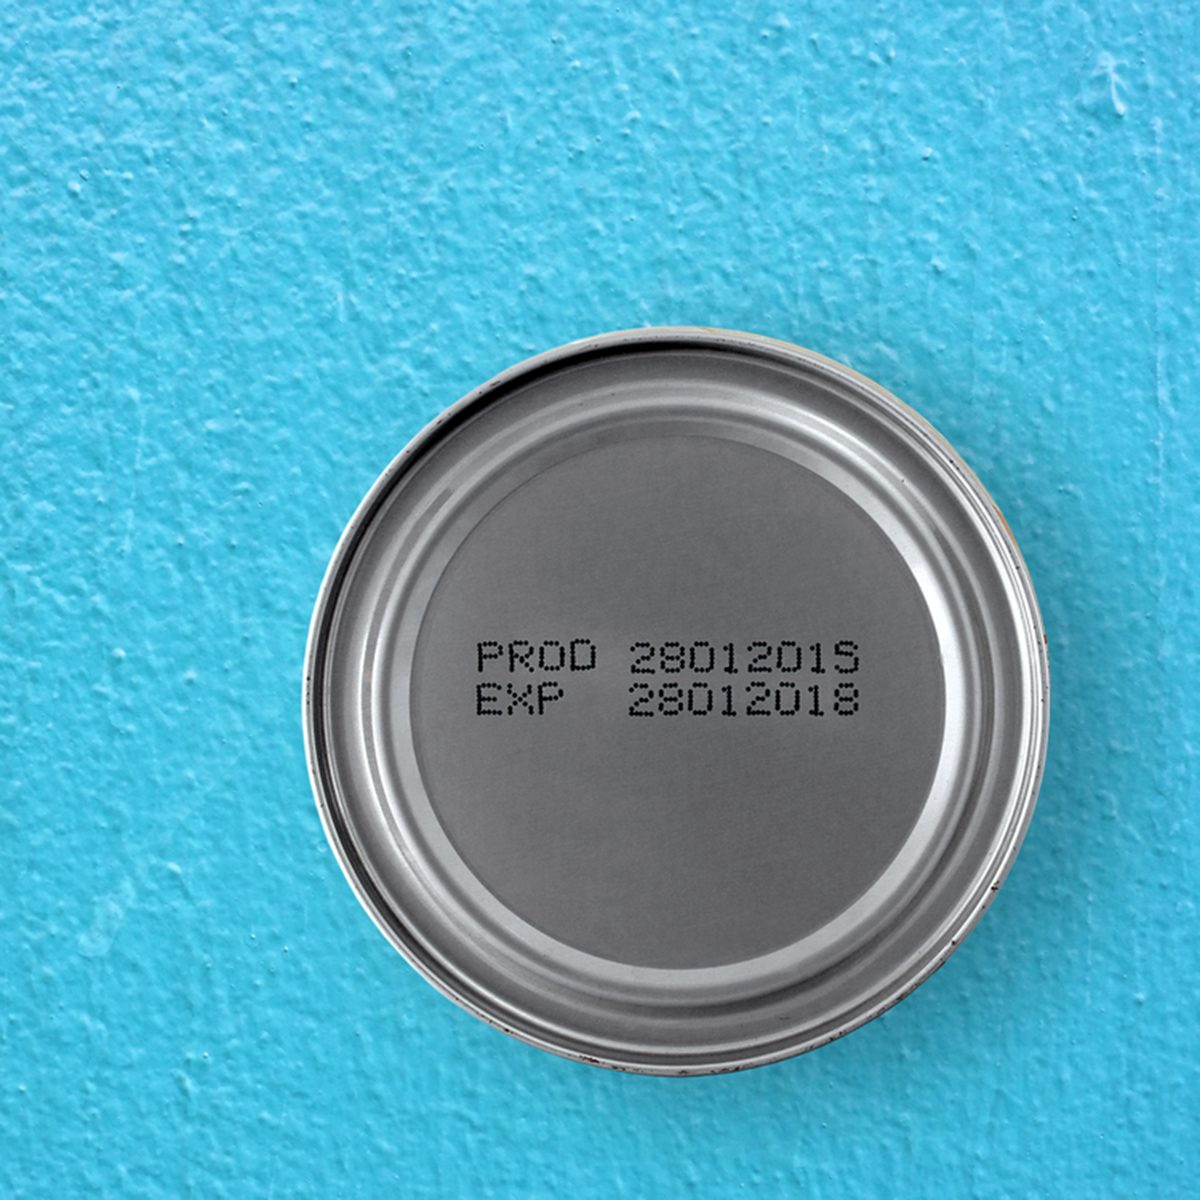 manufacture date and expiry date printed on the bottom of aluminum cans on blue cement table background